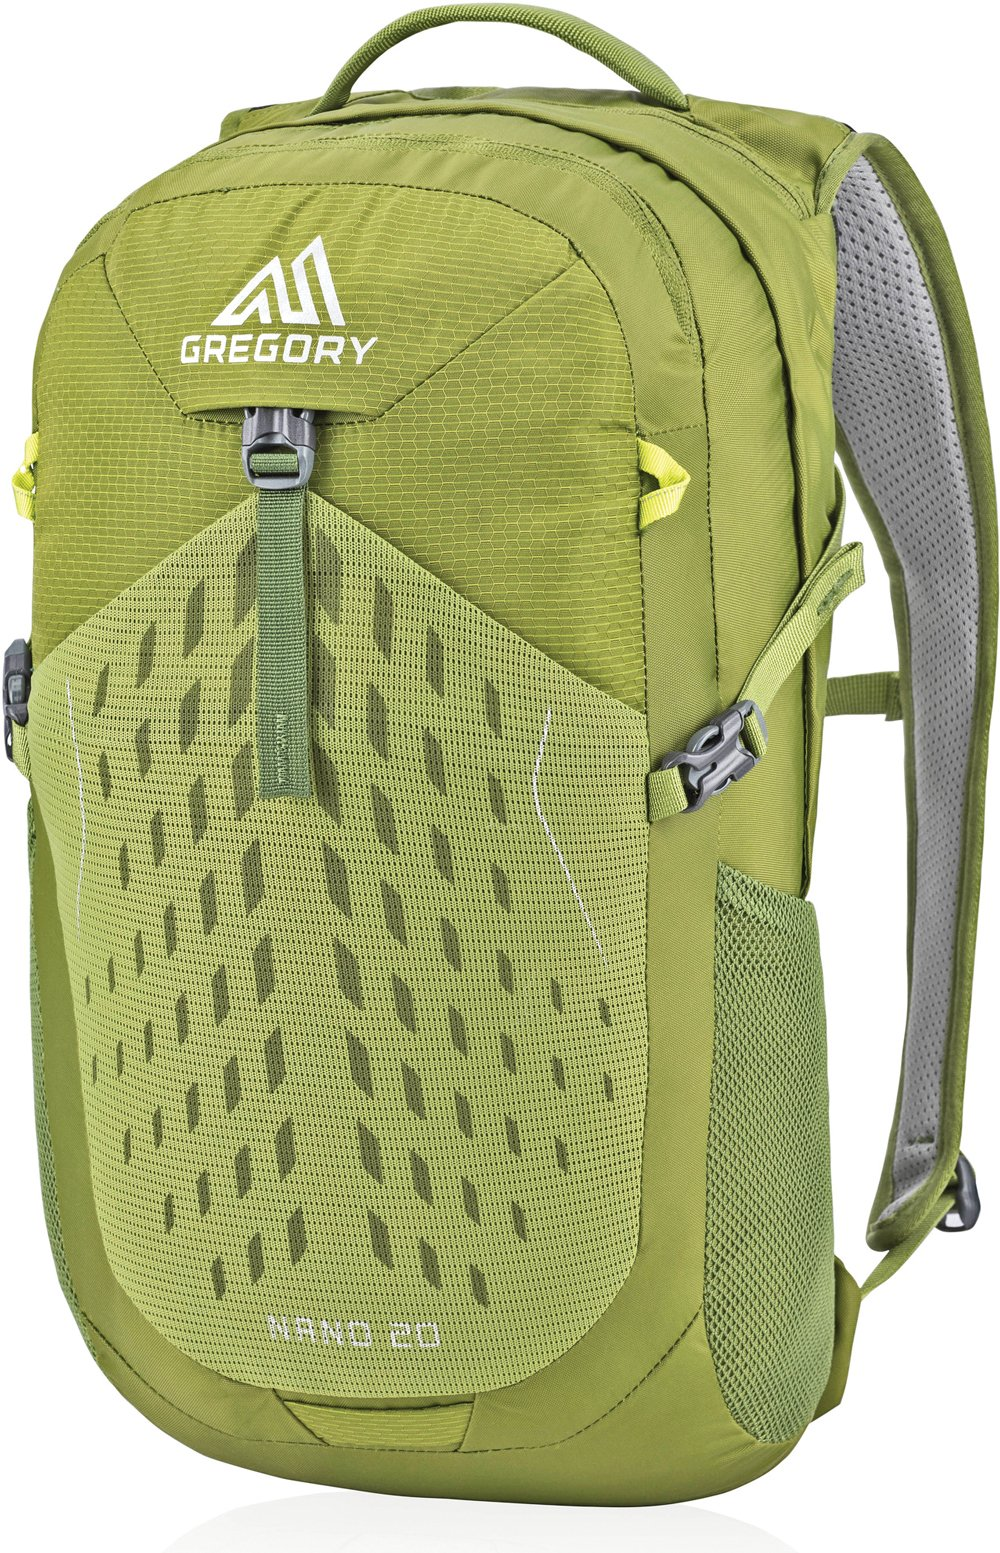 Gregory Nano 20 backpack for outdoor exploration